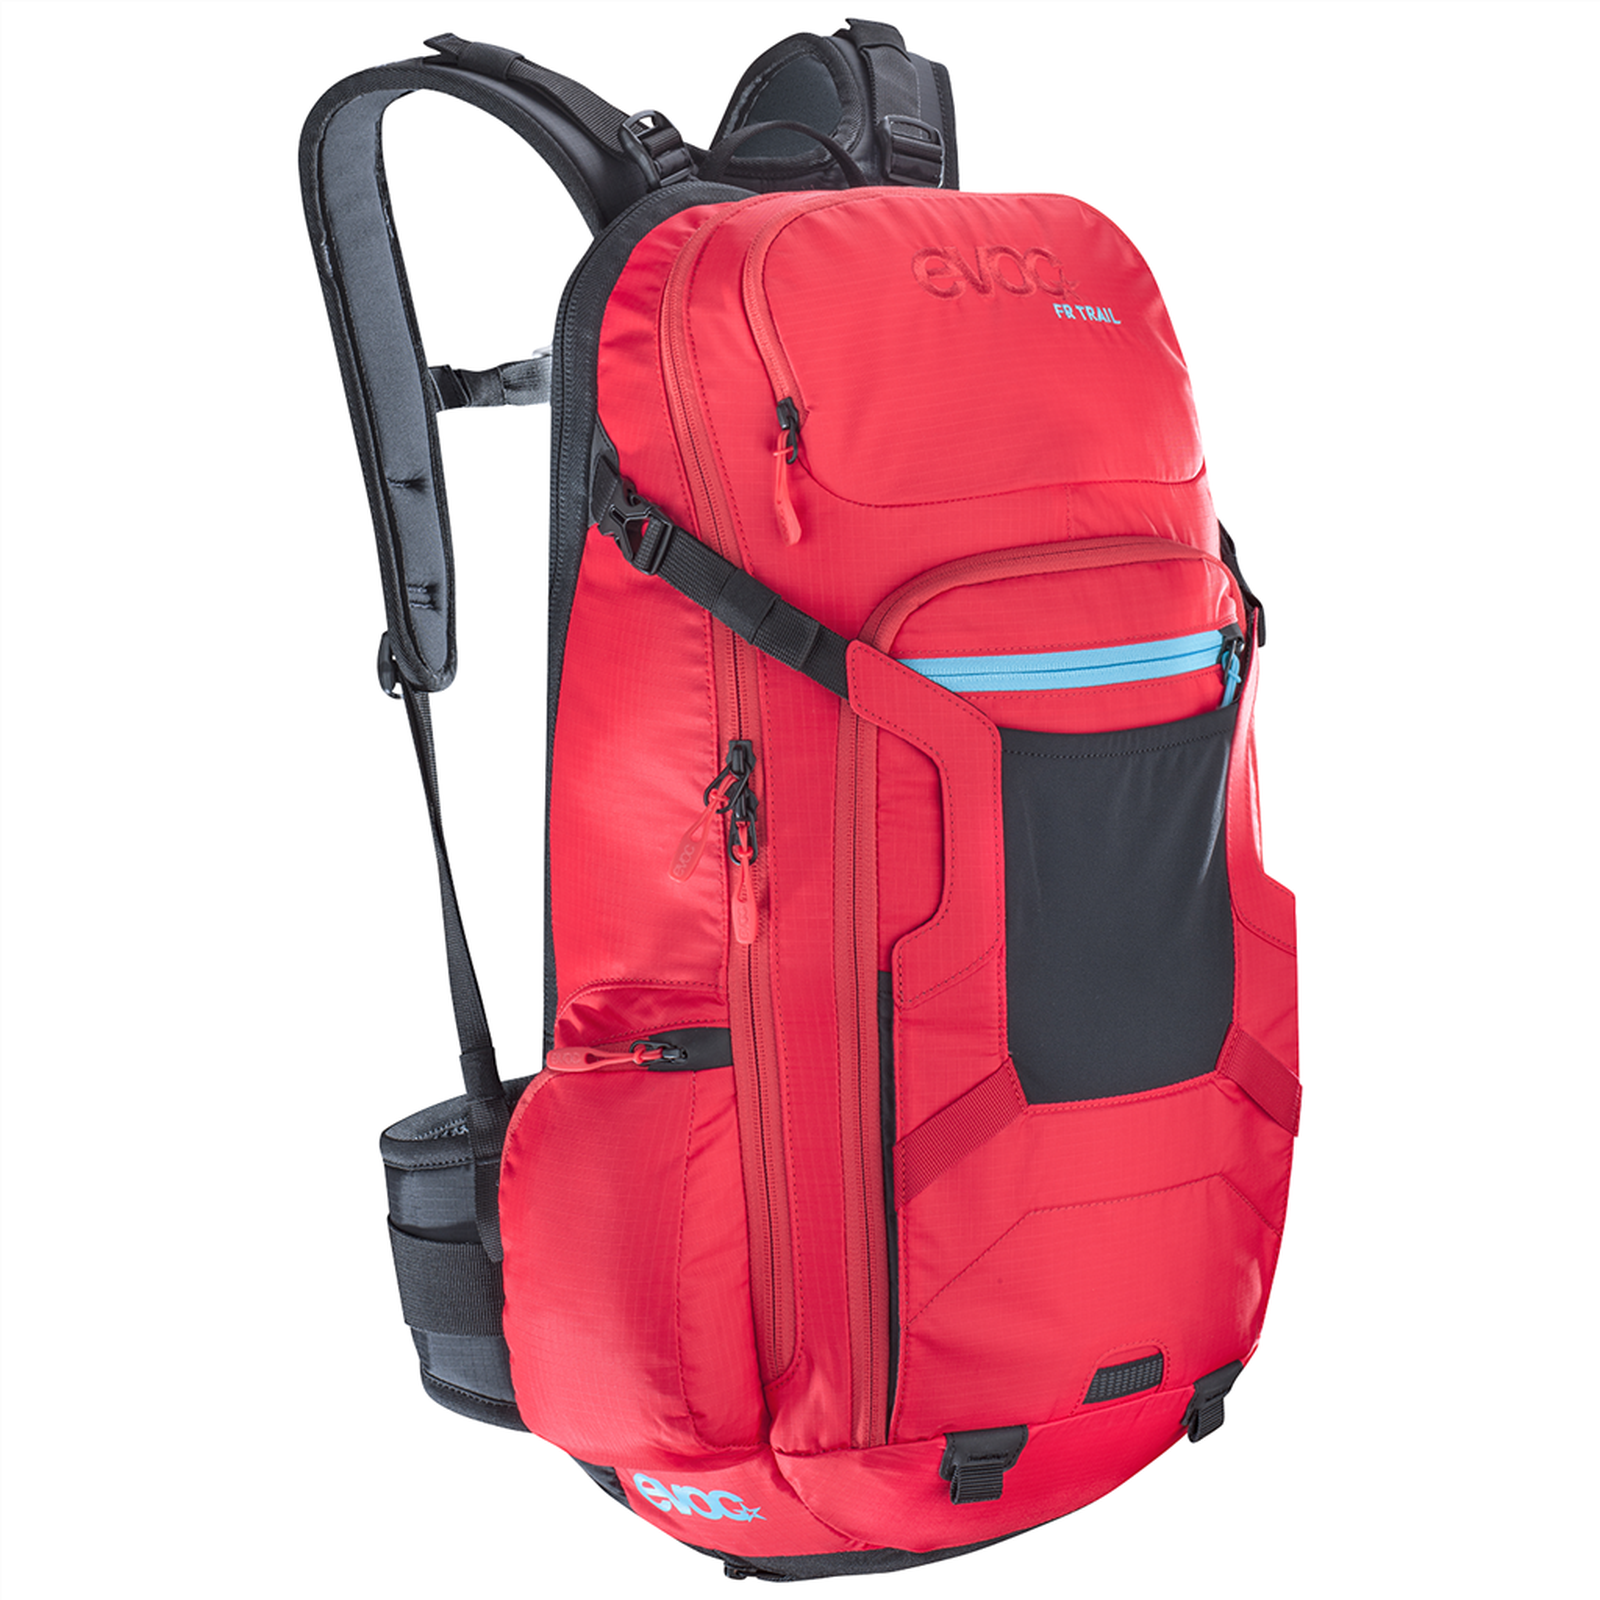 FR Trail 20L Backpack